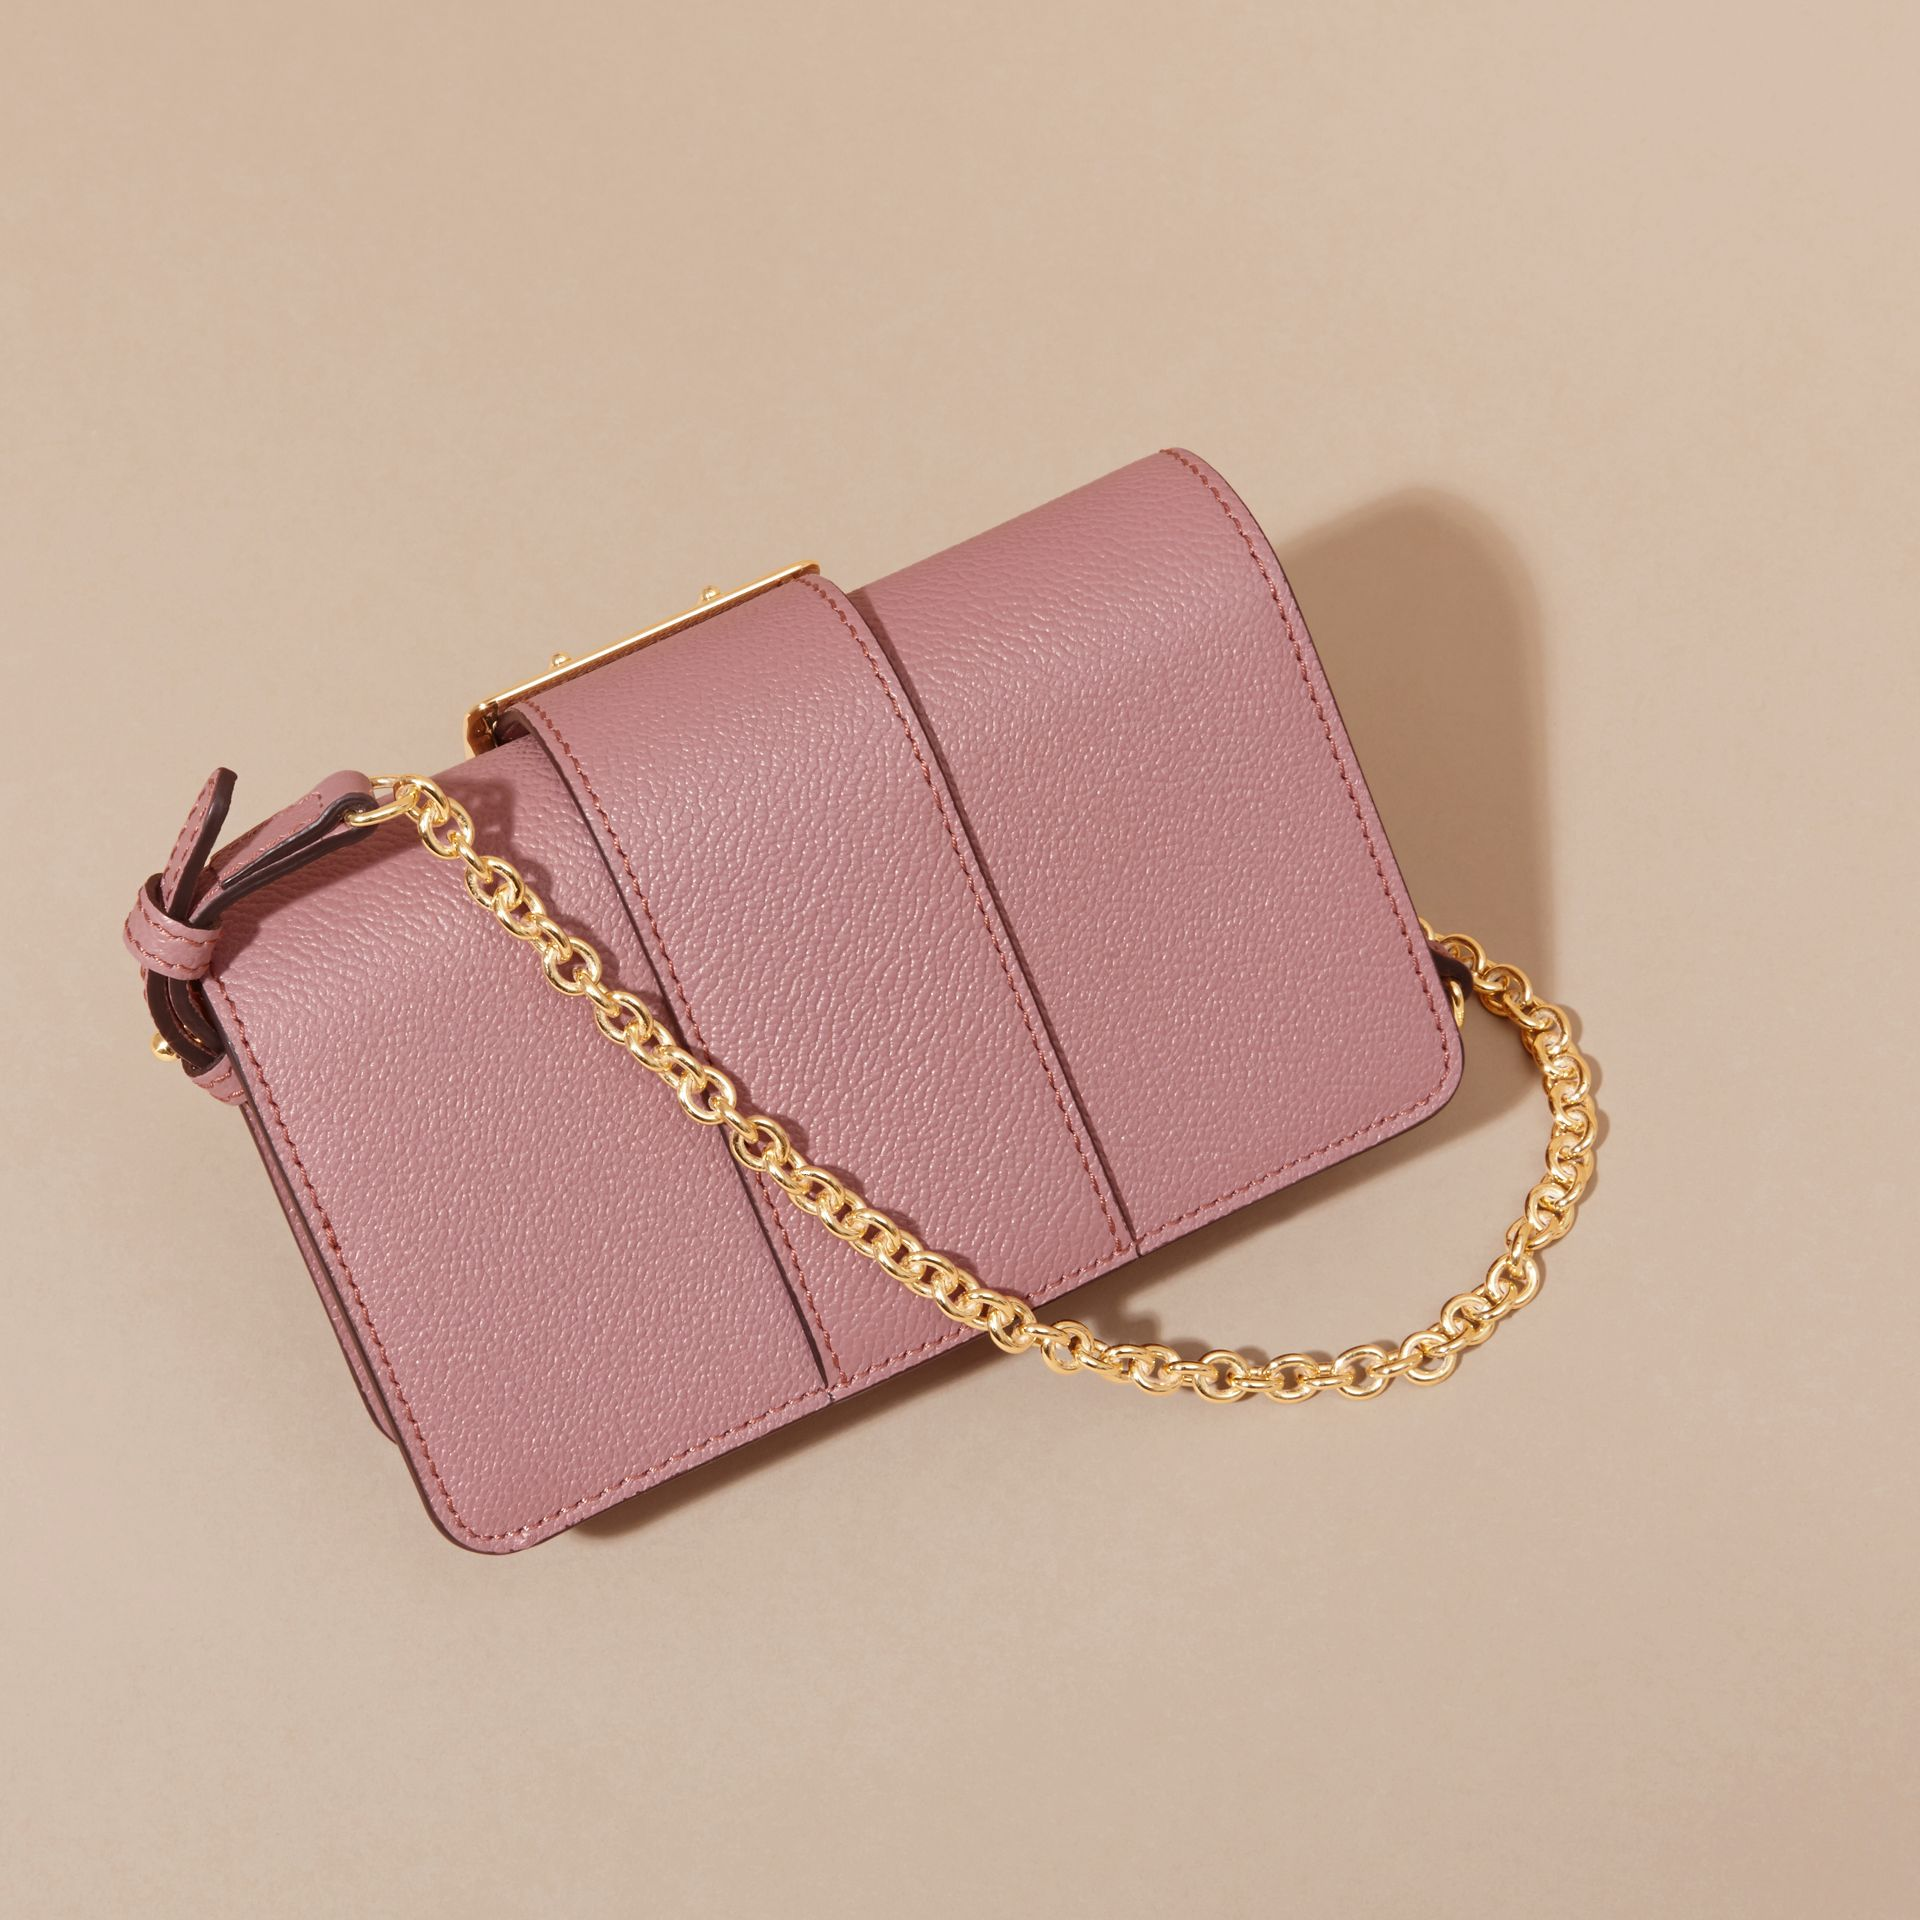 Dusty pink The Mini Buckle Bag in Grainy Leather Dusty Pink - gallery image 5